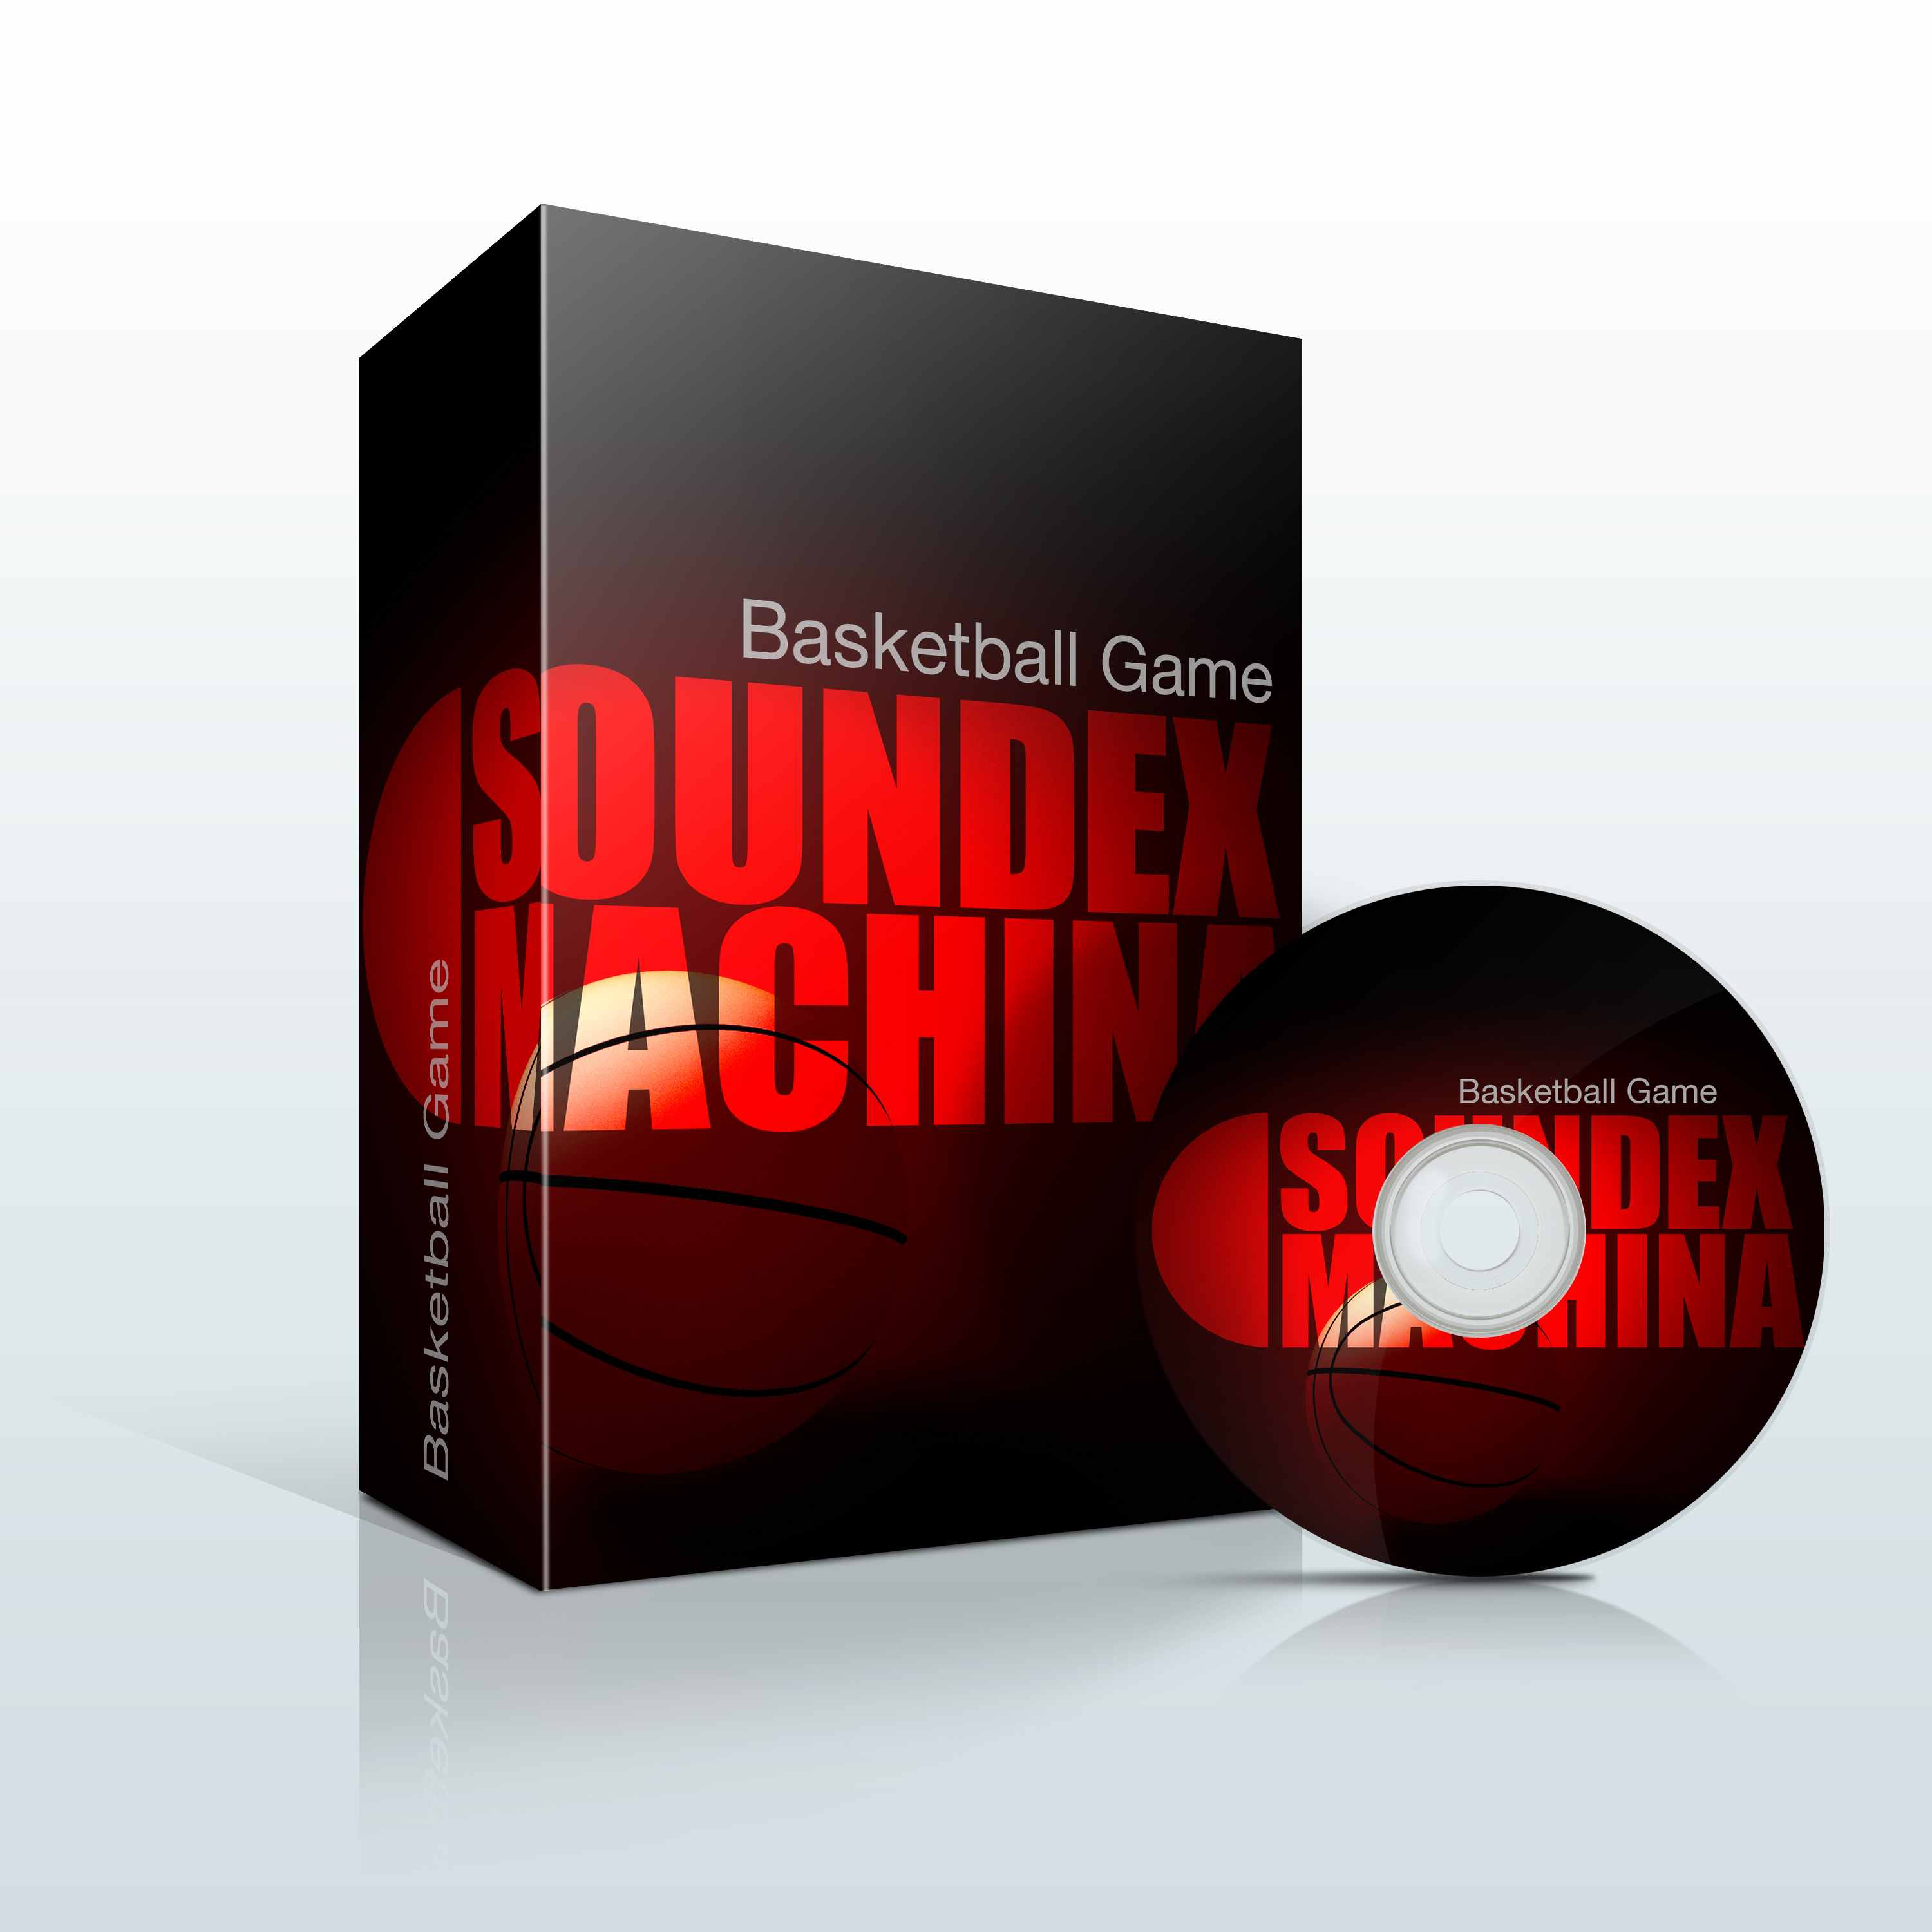 Basketball Game Sound Effects ~ Basketball Game Sounds | Pond5